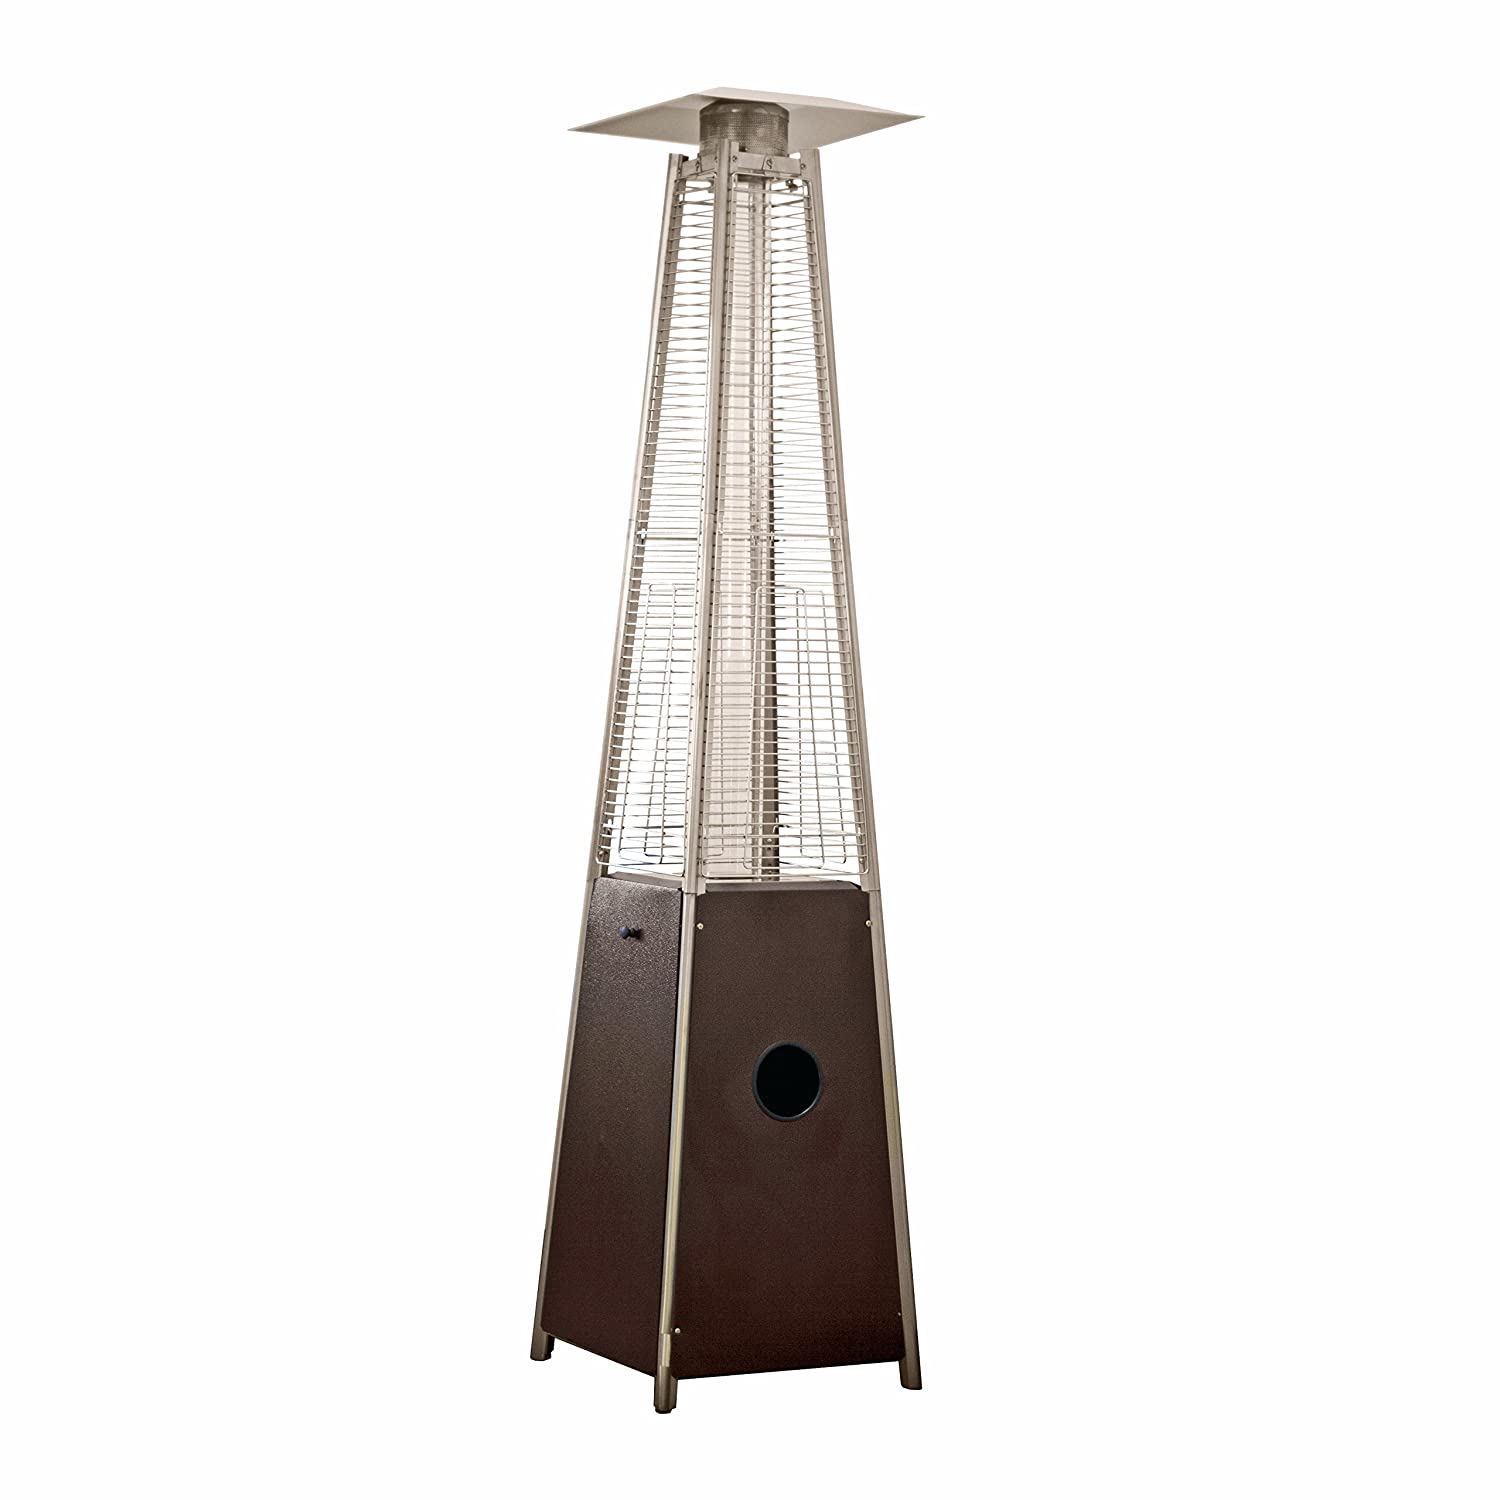 AZ Patio Heaters ... - Amazon.com: Patio Heaters: Patio, Lawn & Garden